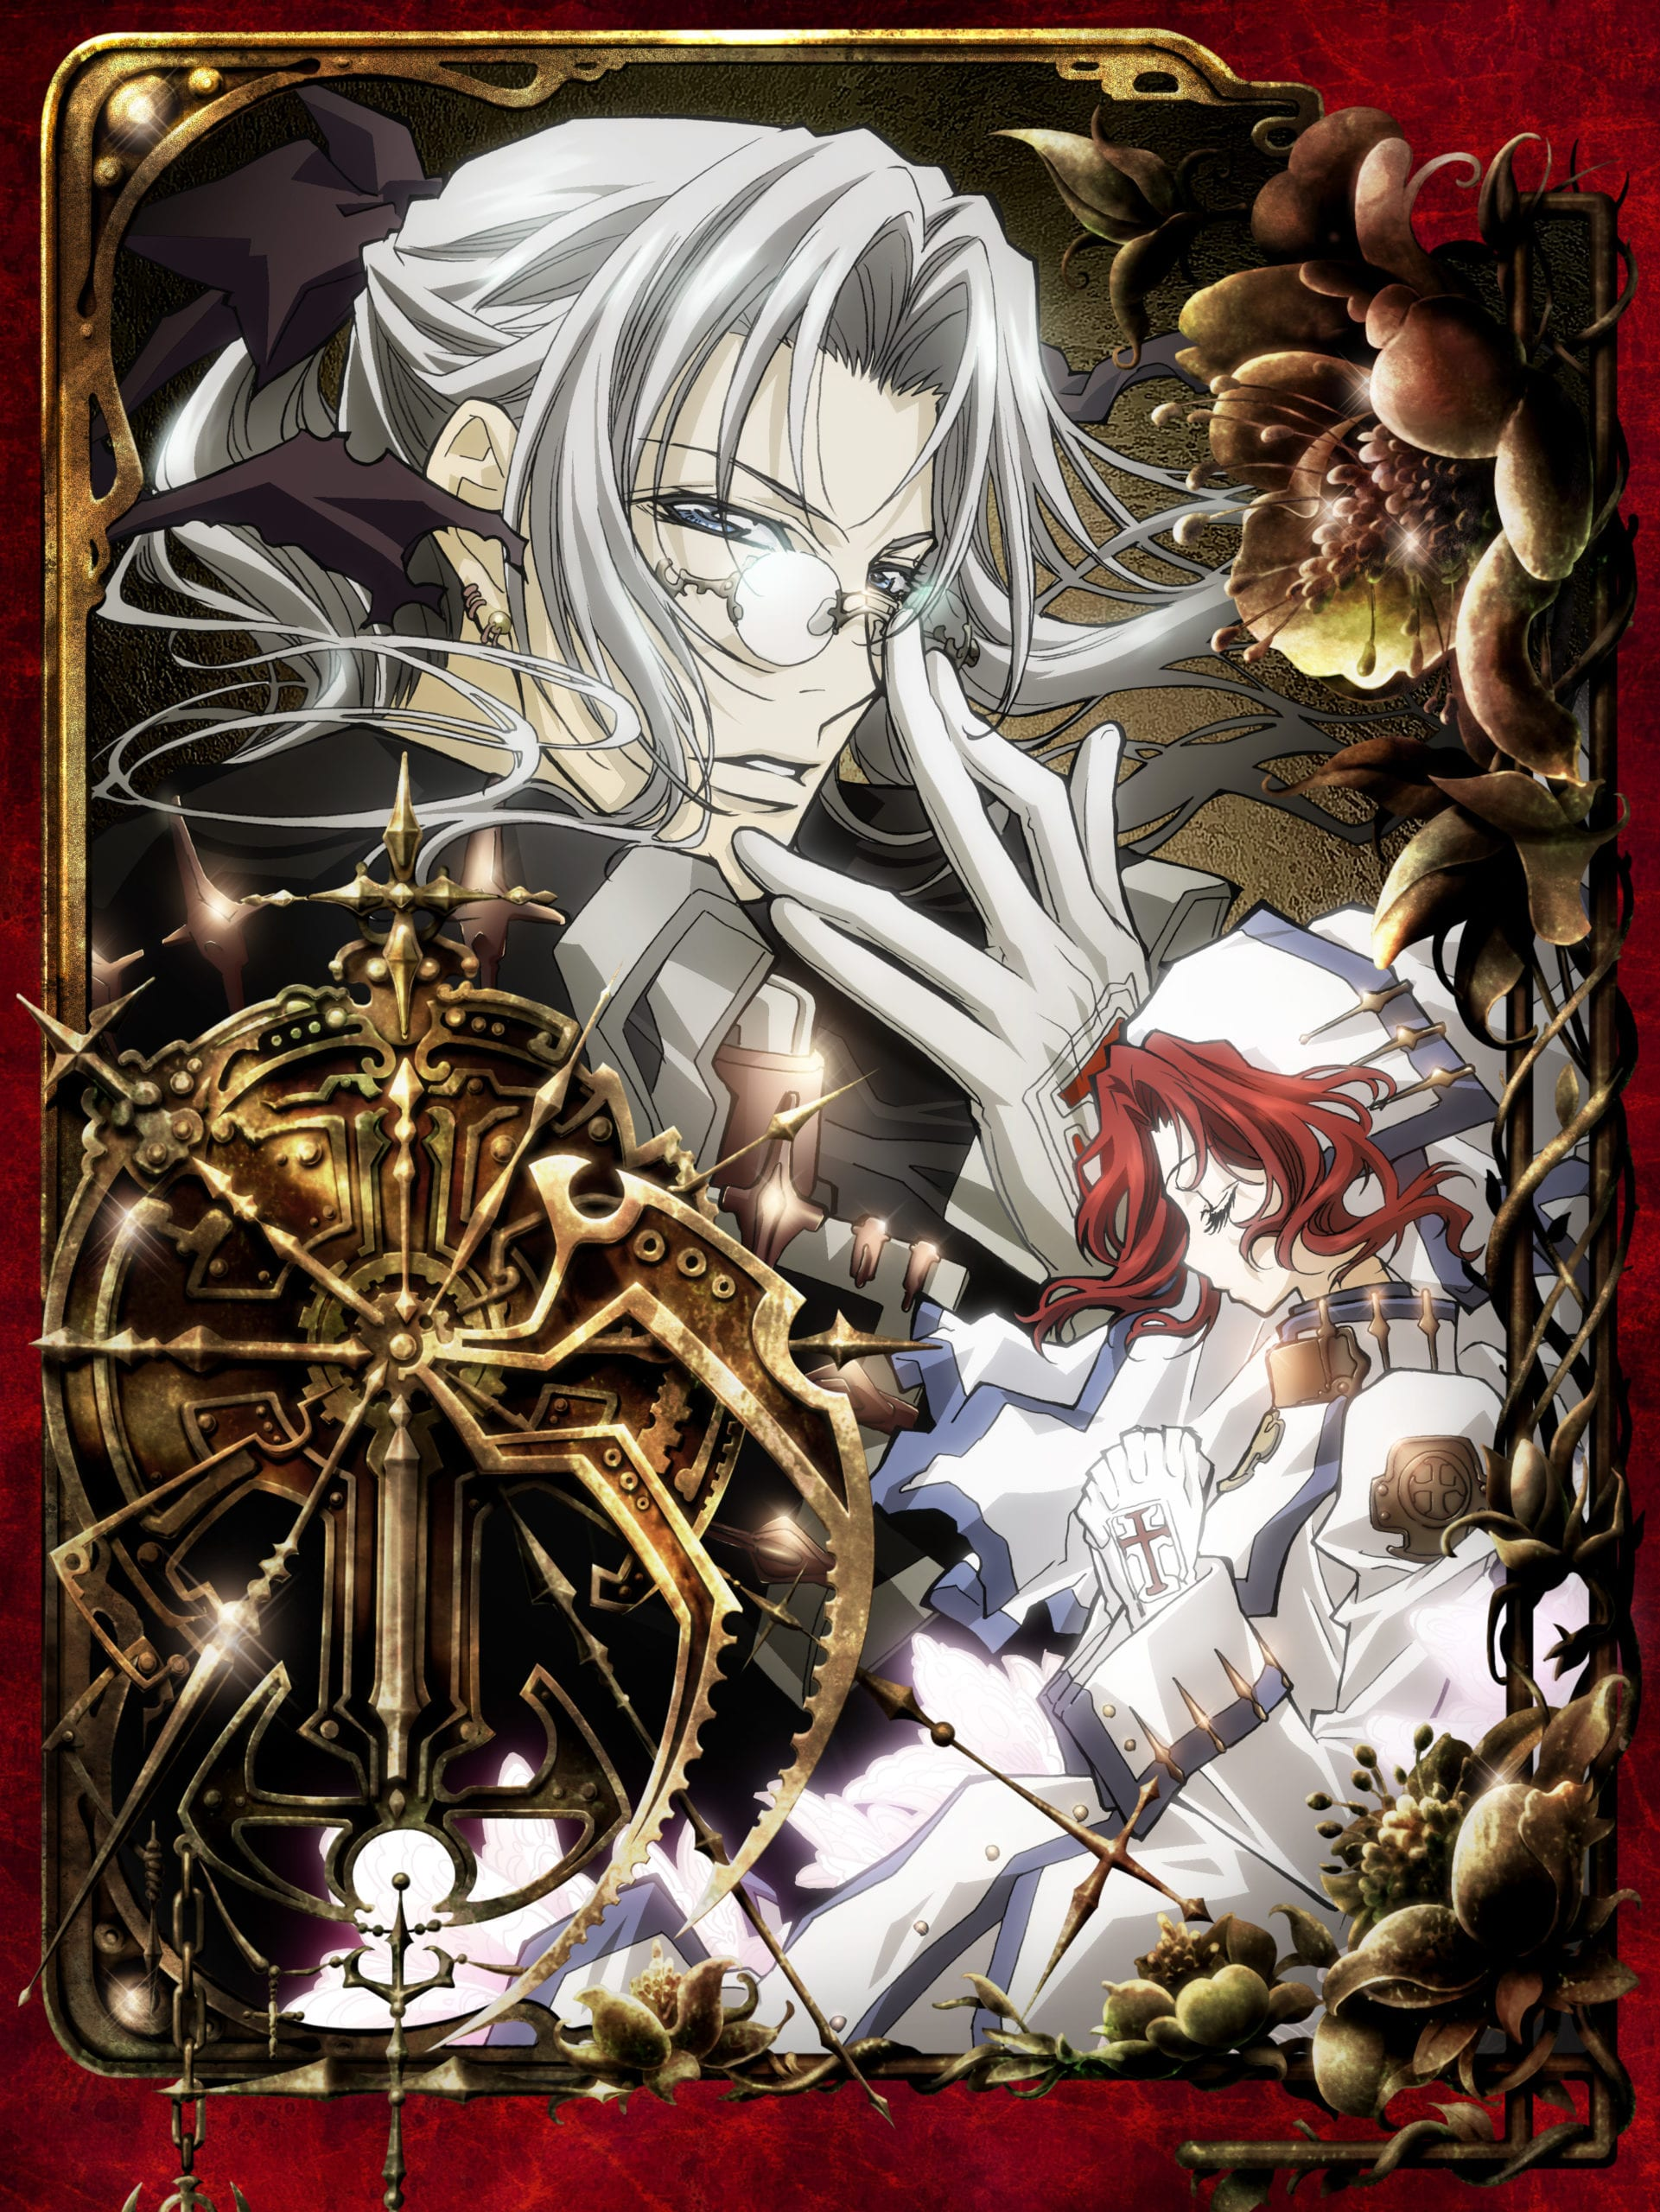 ©2005 Trinity Blood Partners